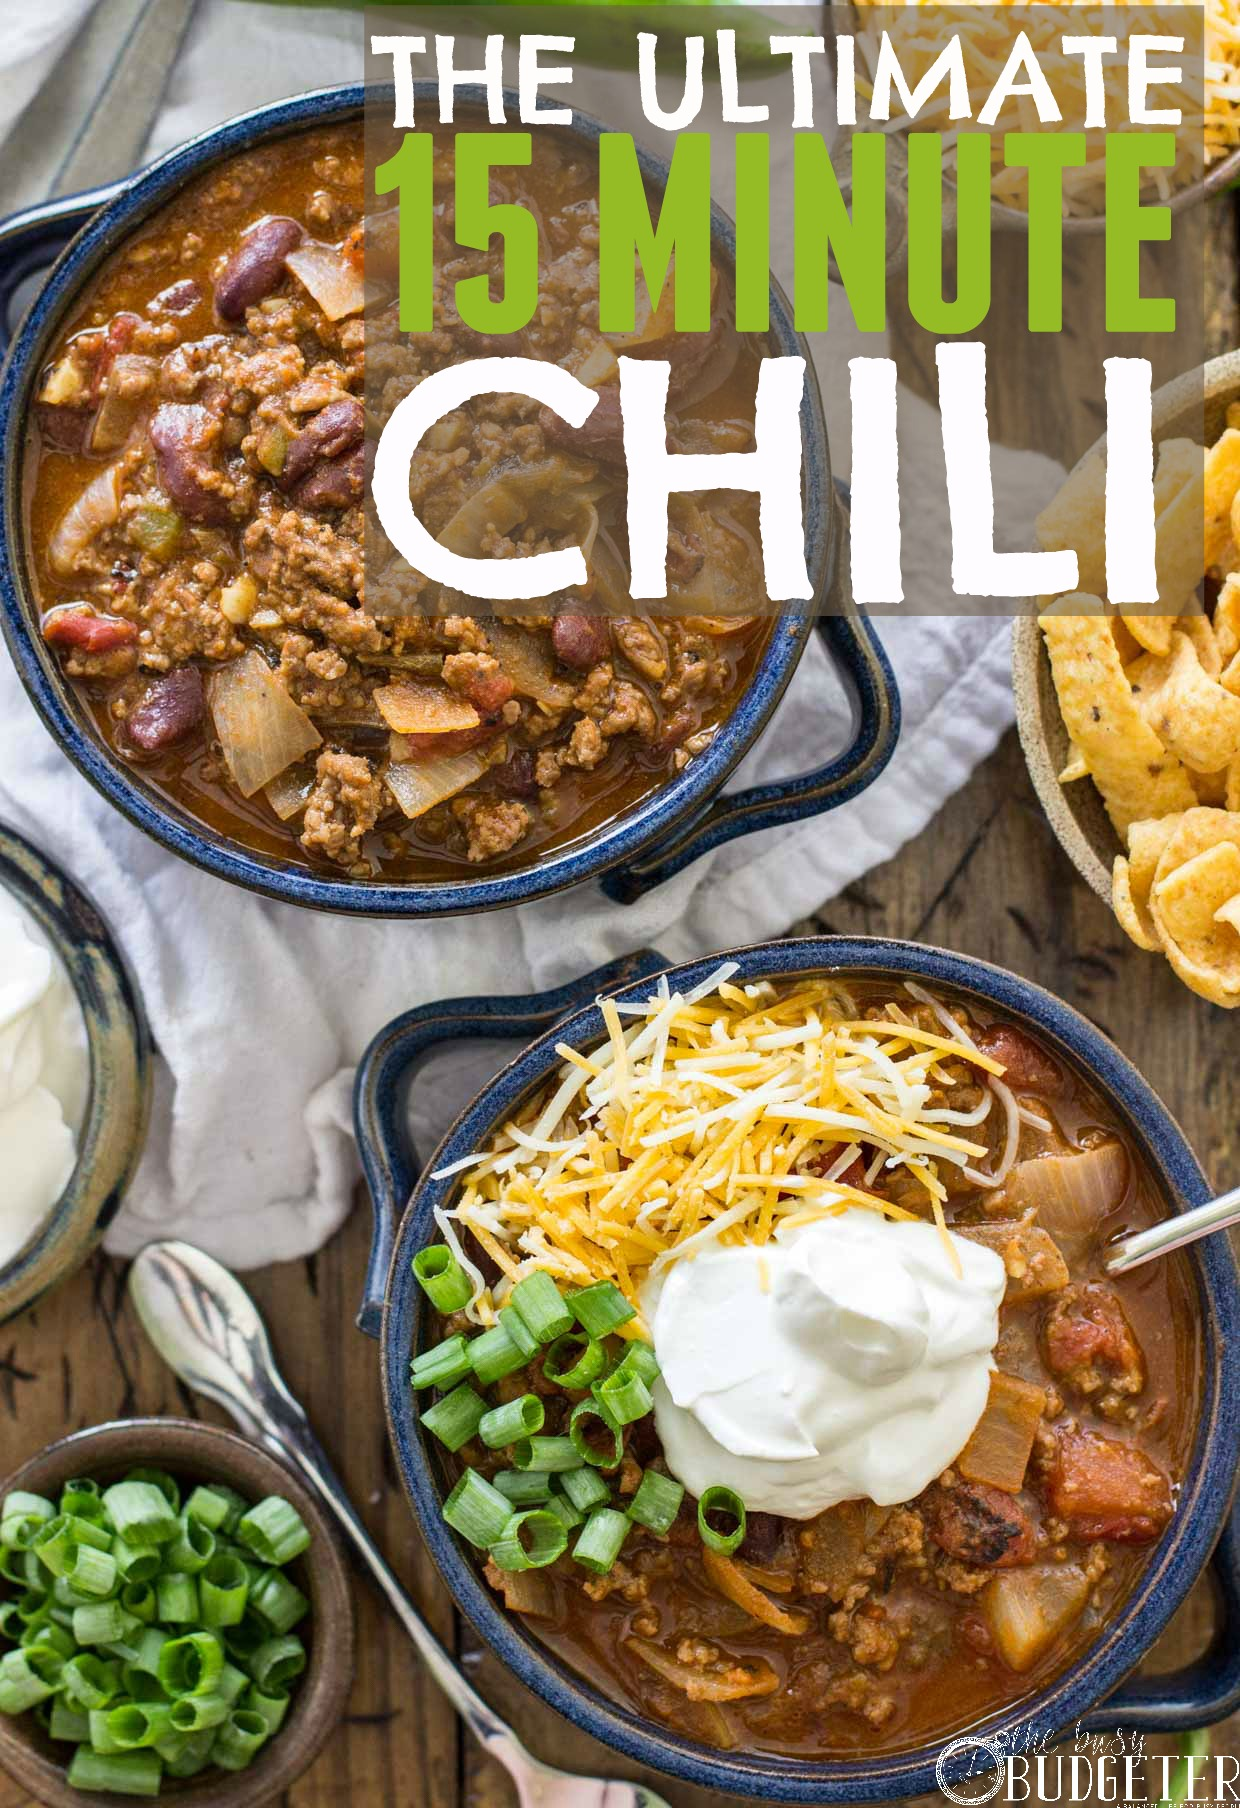 15 Minute Chili Recipe. I'm always looking for quick dinners and easy recipes. We made this tonight and it took just about 15 minutes. She's got a whole series of 15 minute meals that we love!